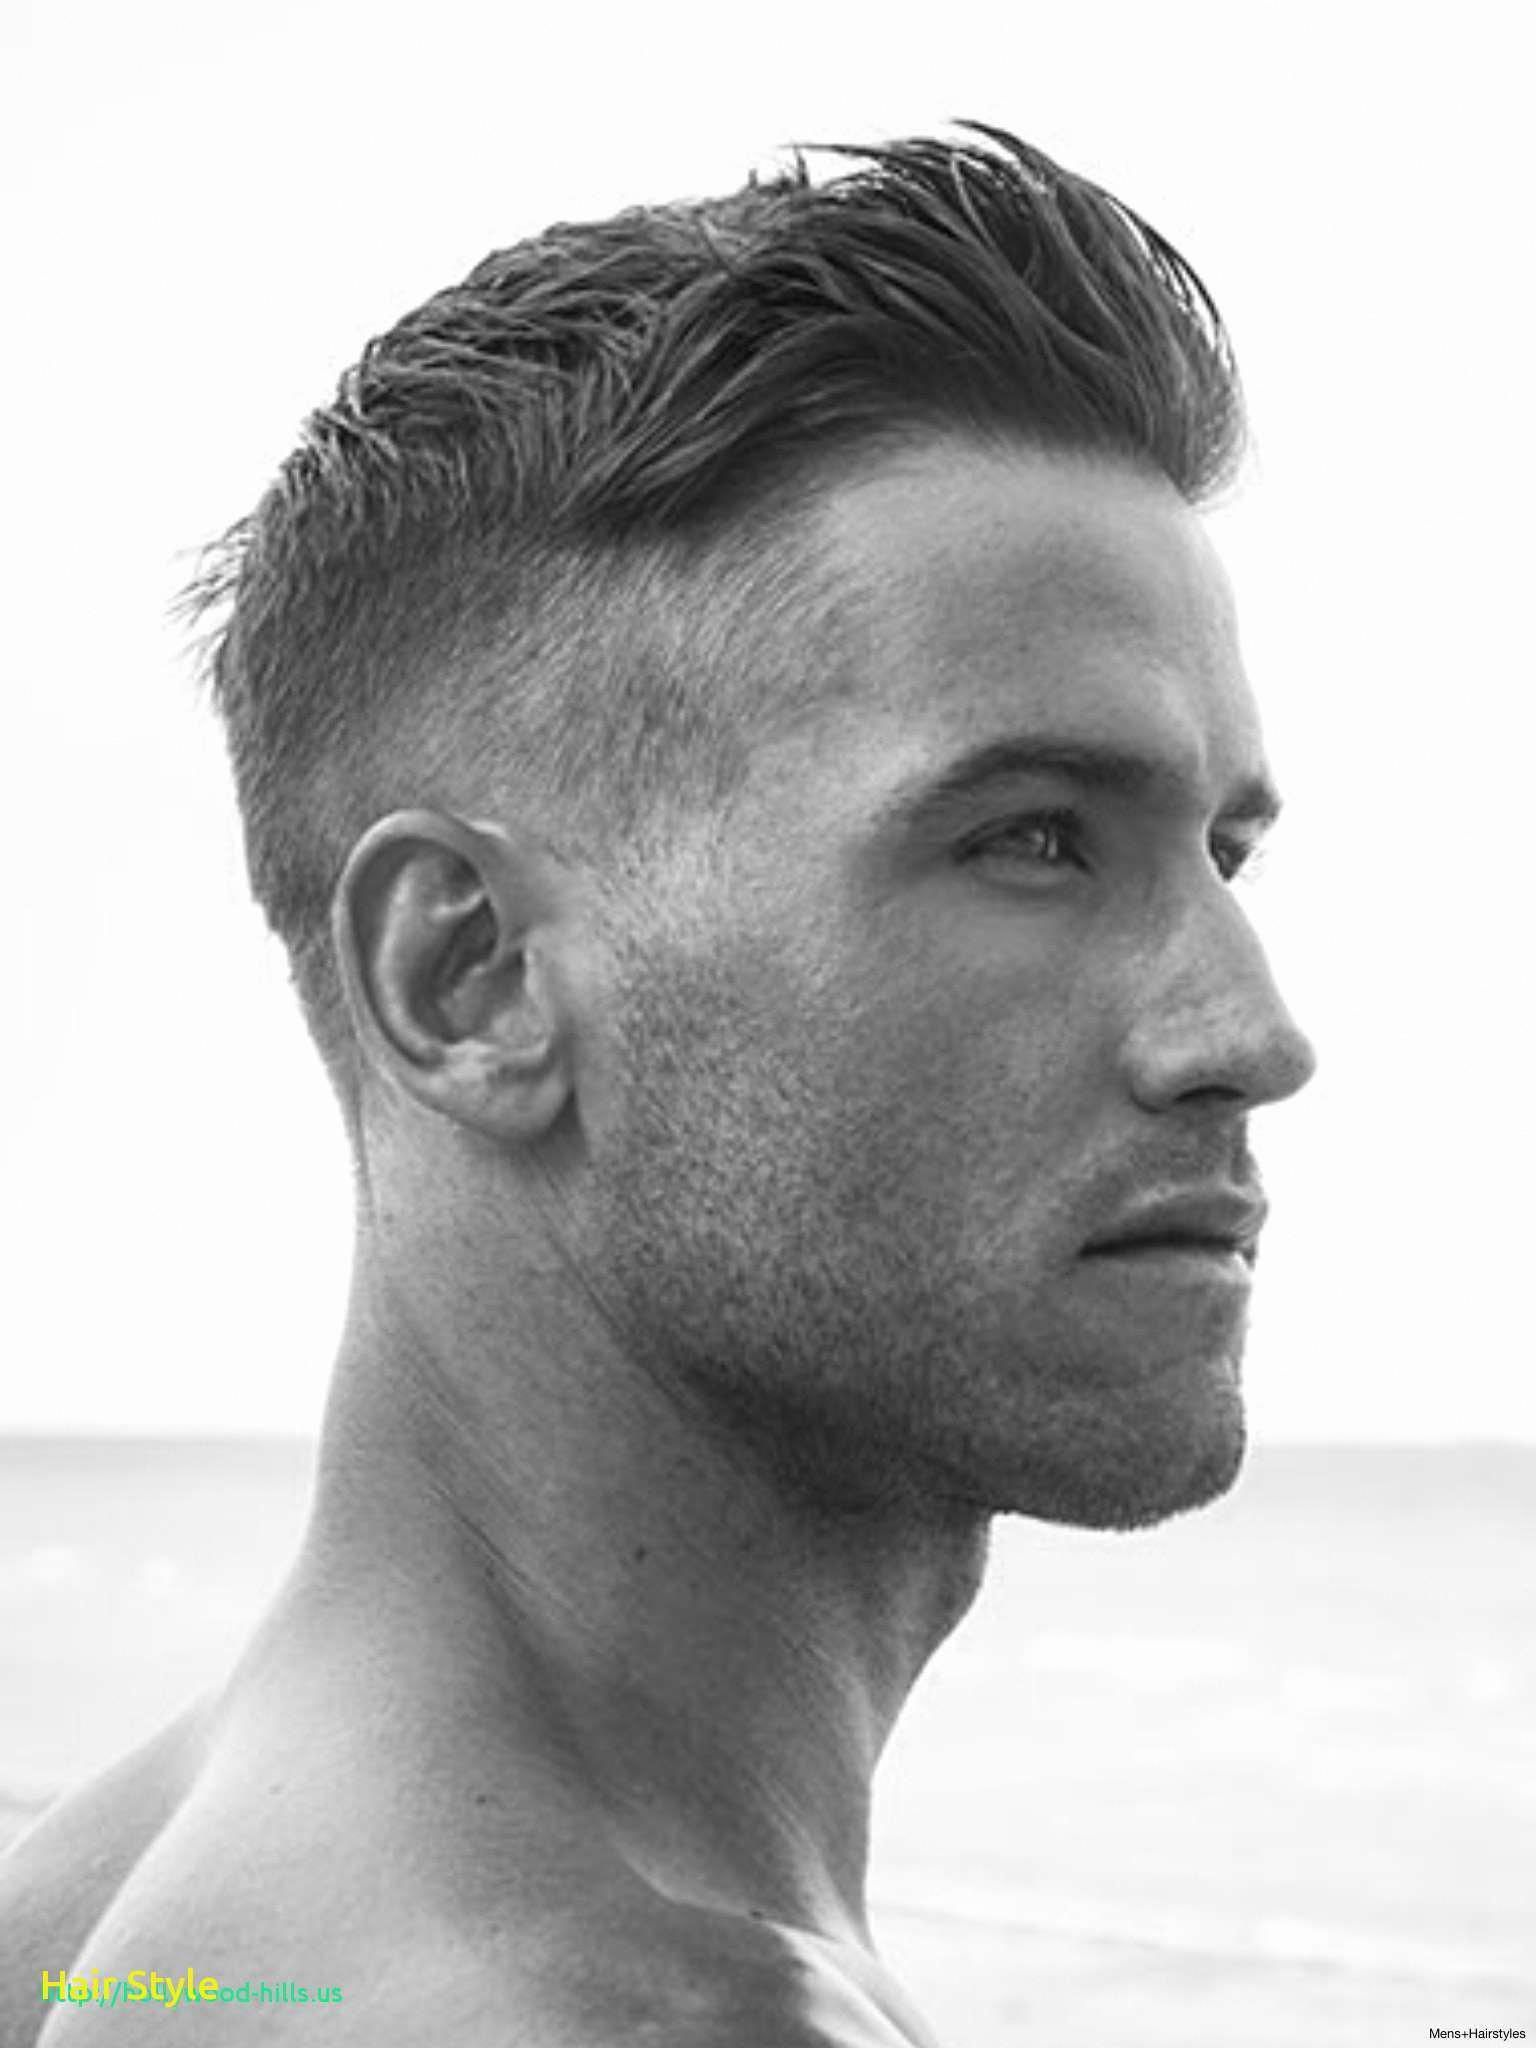 Awesome Best Mens Hairstyles Bestmenshairstyles Mens Haircuts Short Mens Hairstyles Thick Hair Haircut For Thick Hair